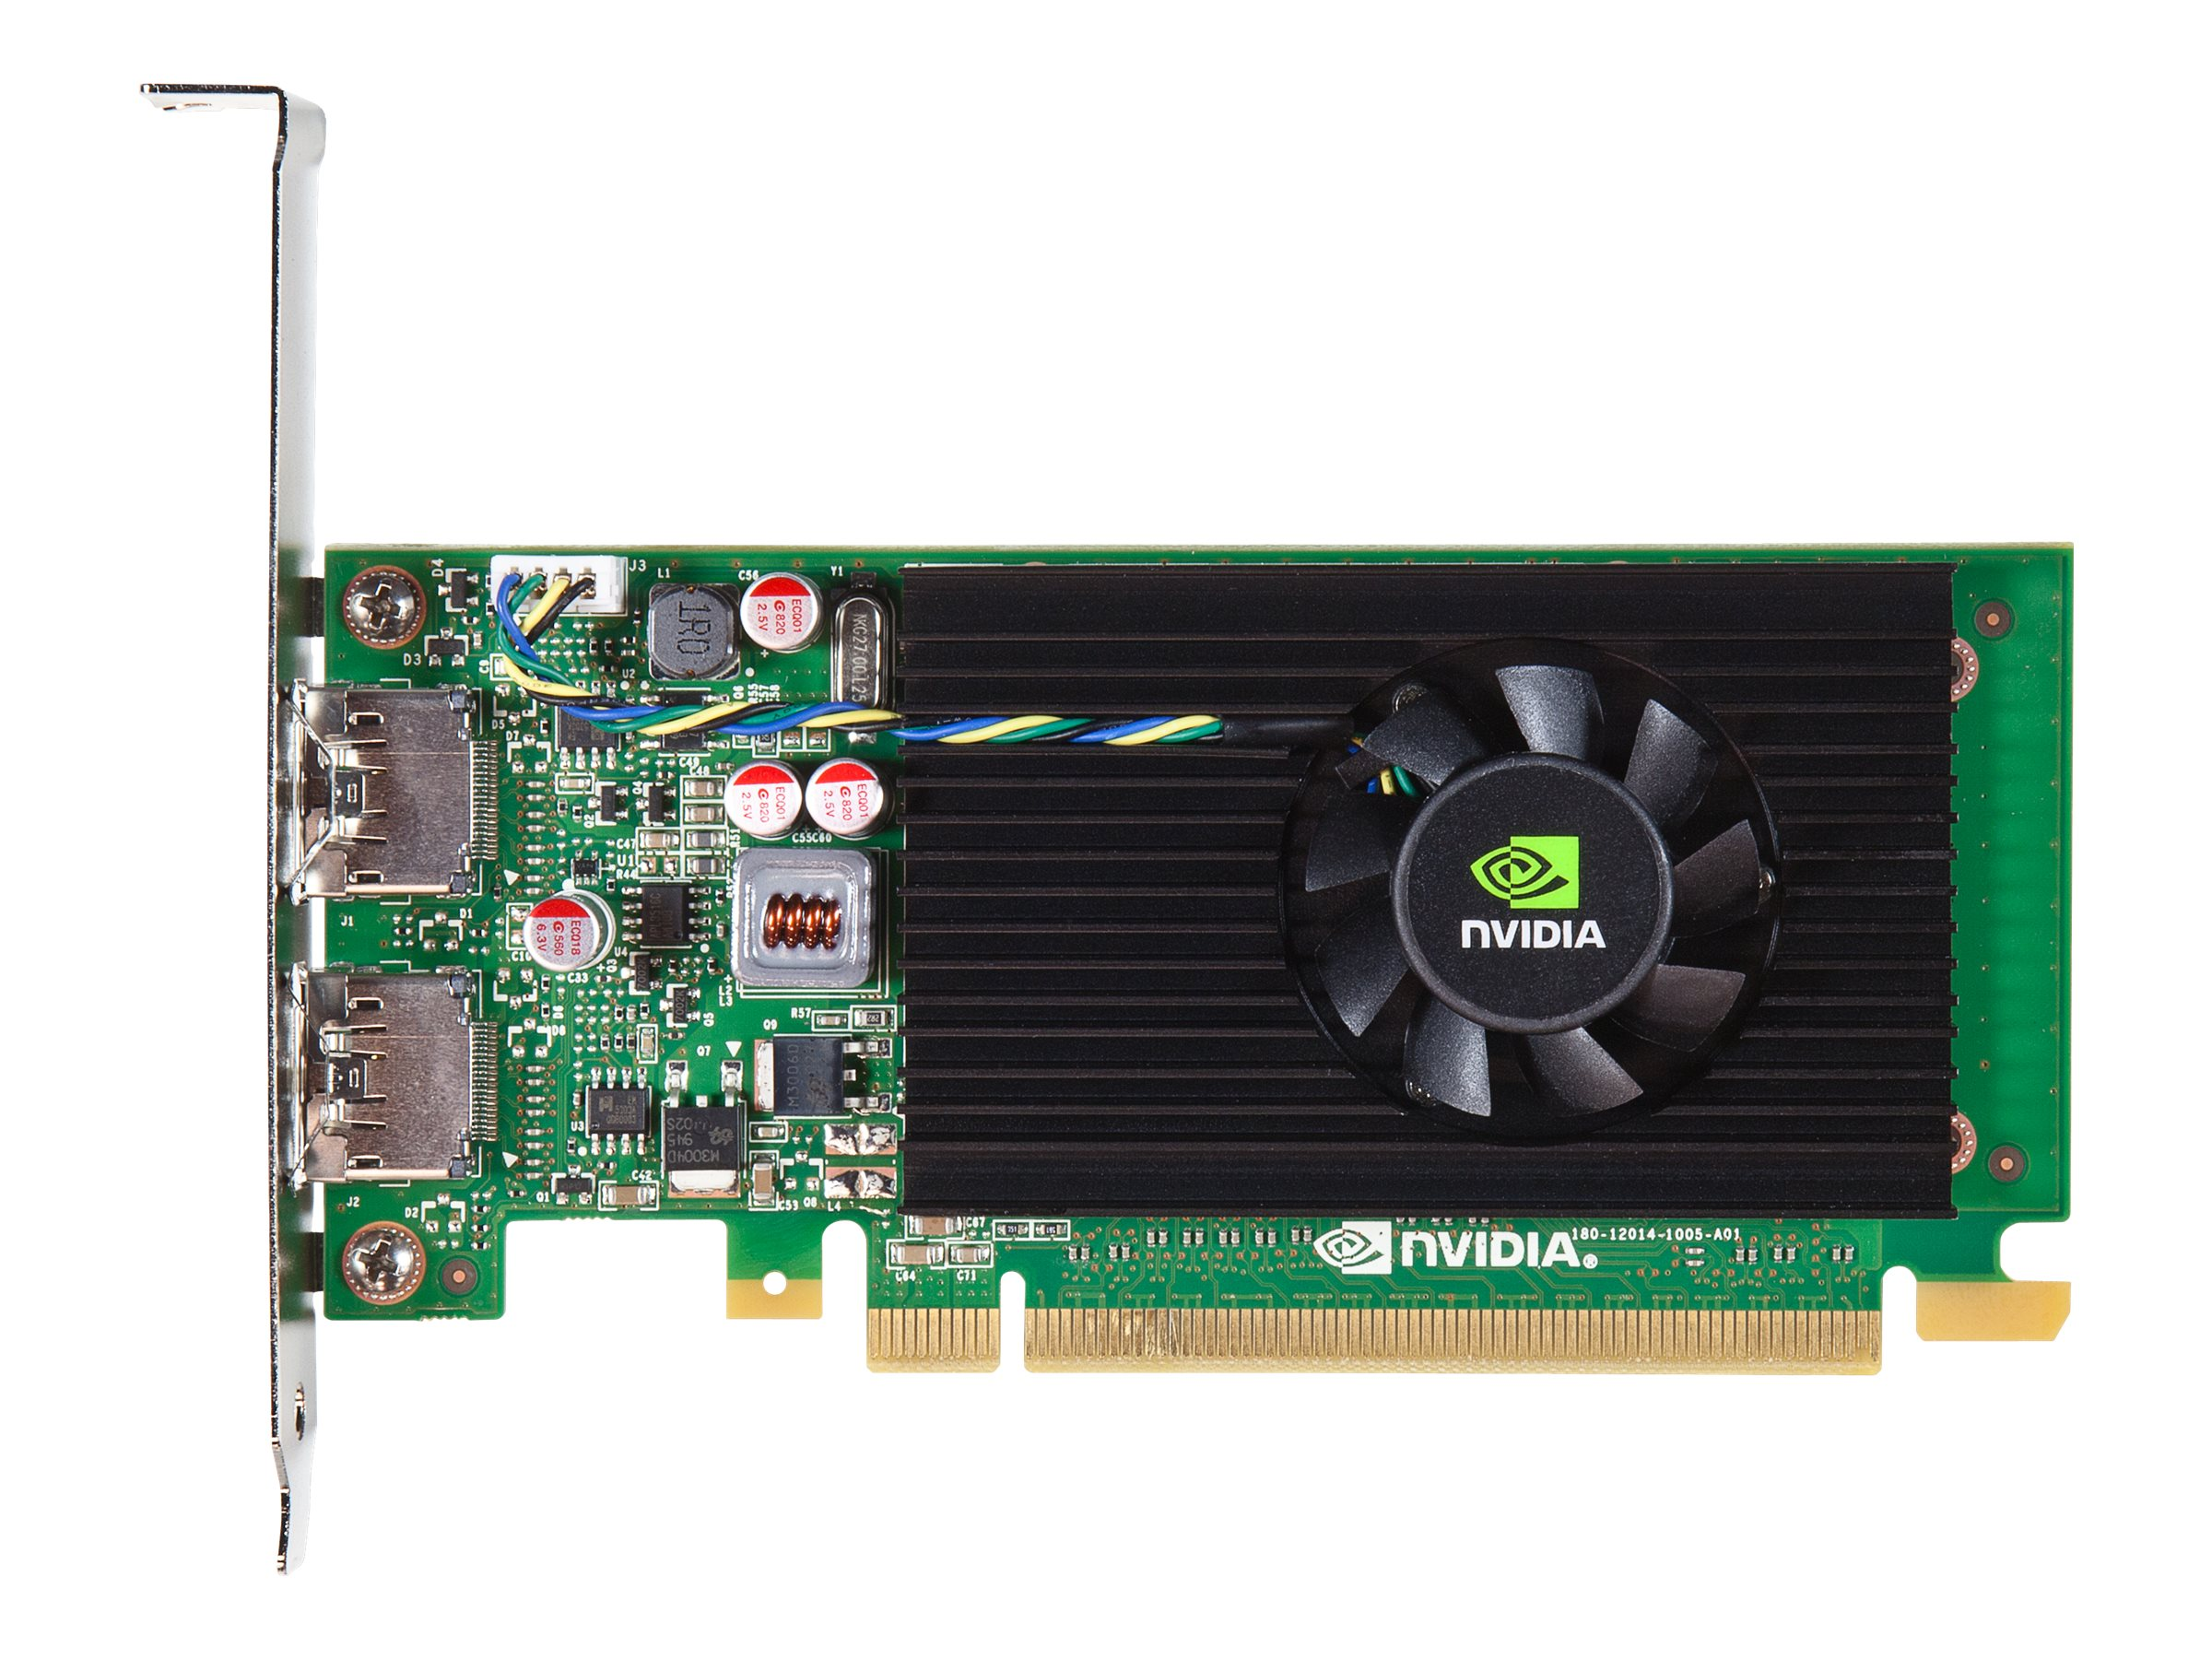 PNY NVIDIA Quadro NVS 310 PCIe Graphics Card, 1GB DDR3, VCNVS310DP-1GB-PB, 30360381, Graphics/Video Accelerators